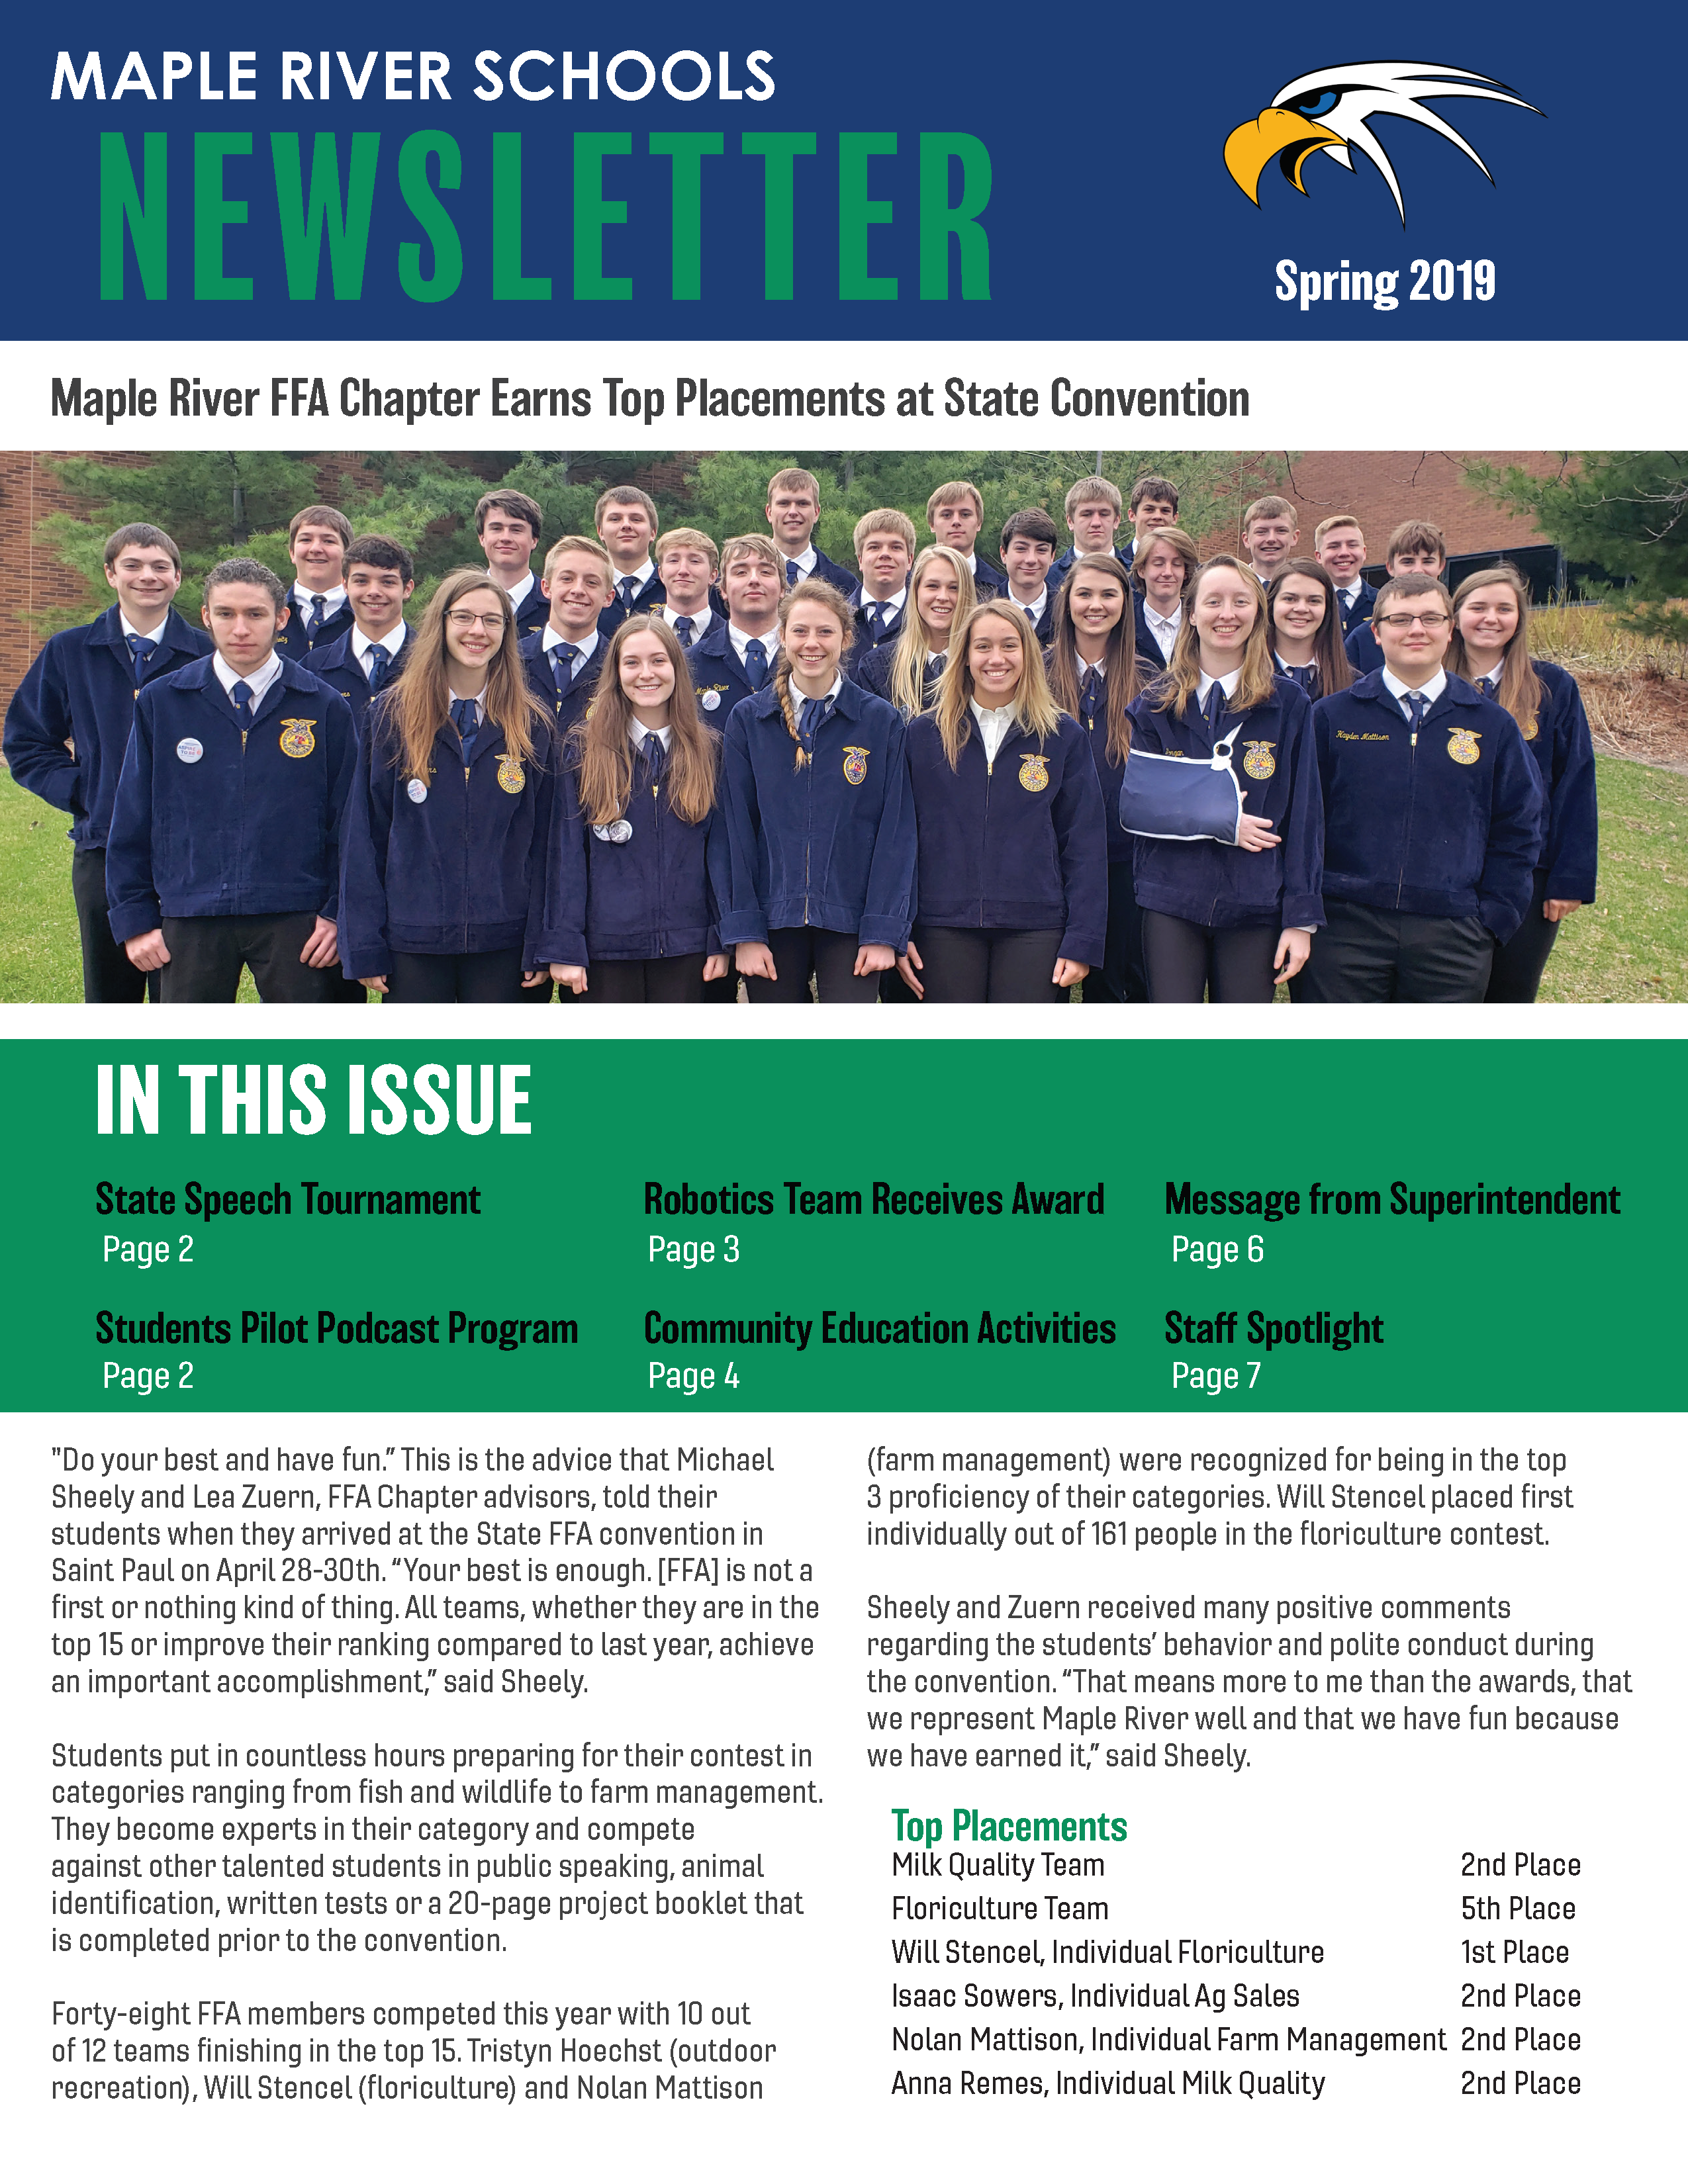 Front page of Maple River Schools Spring 2019 newsletter